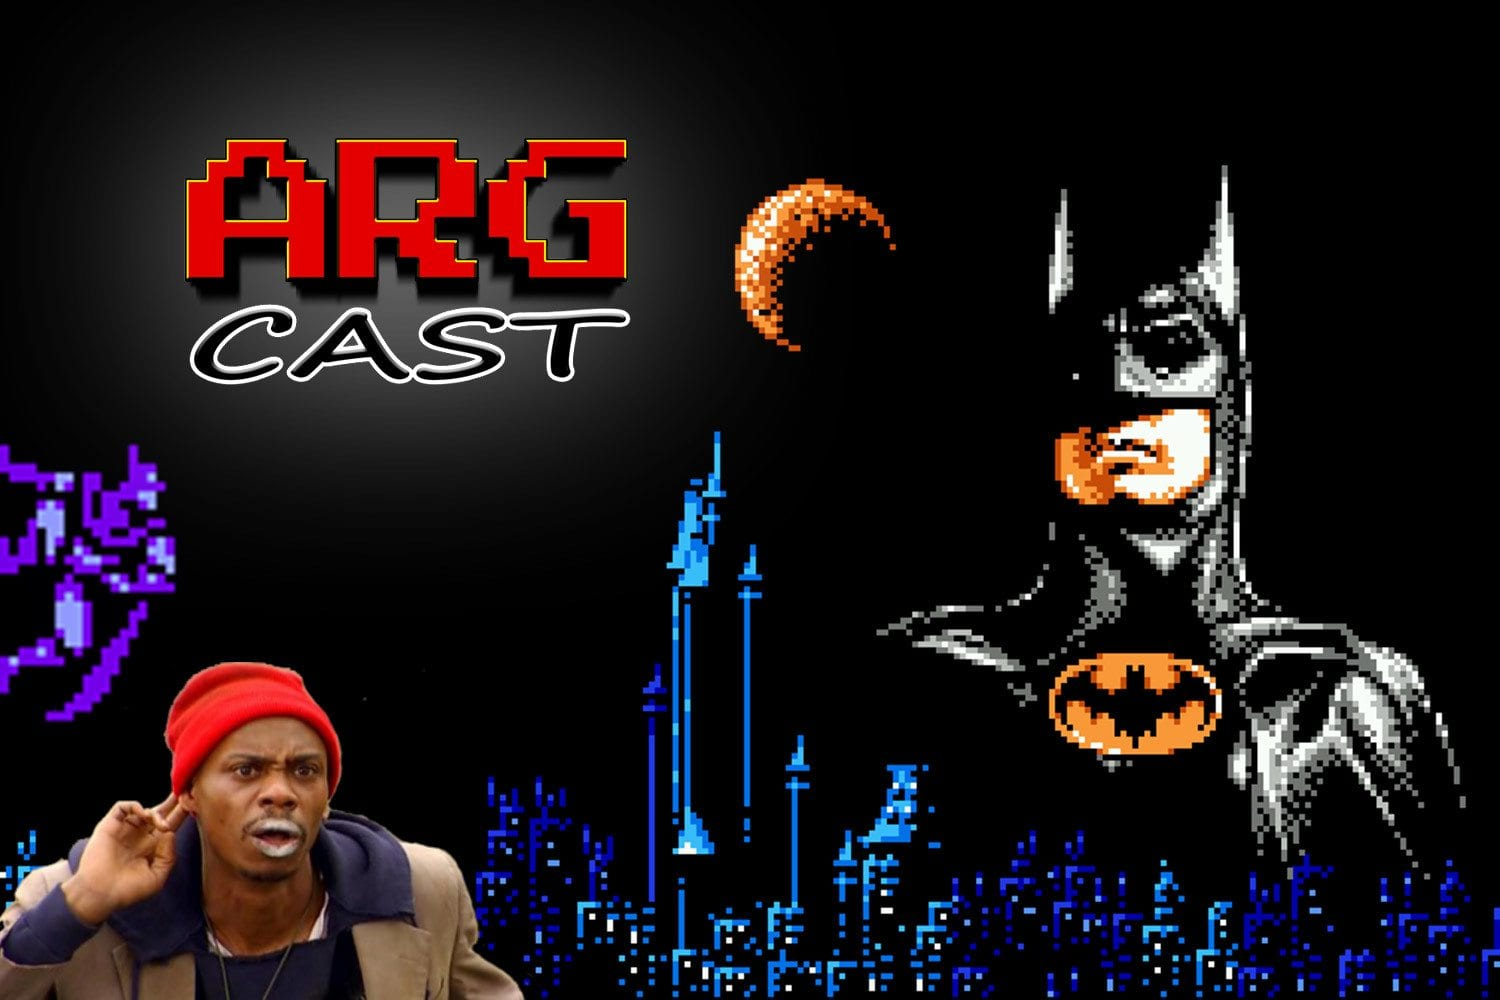 ARGcast #65: Becoming Batman with Andre Tipton